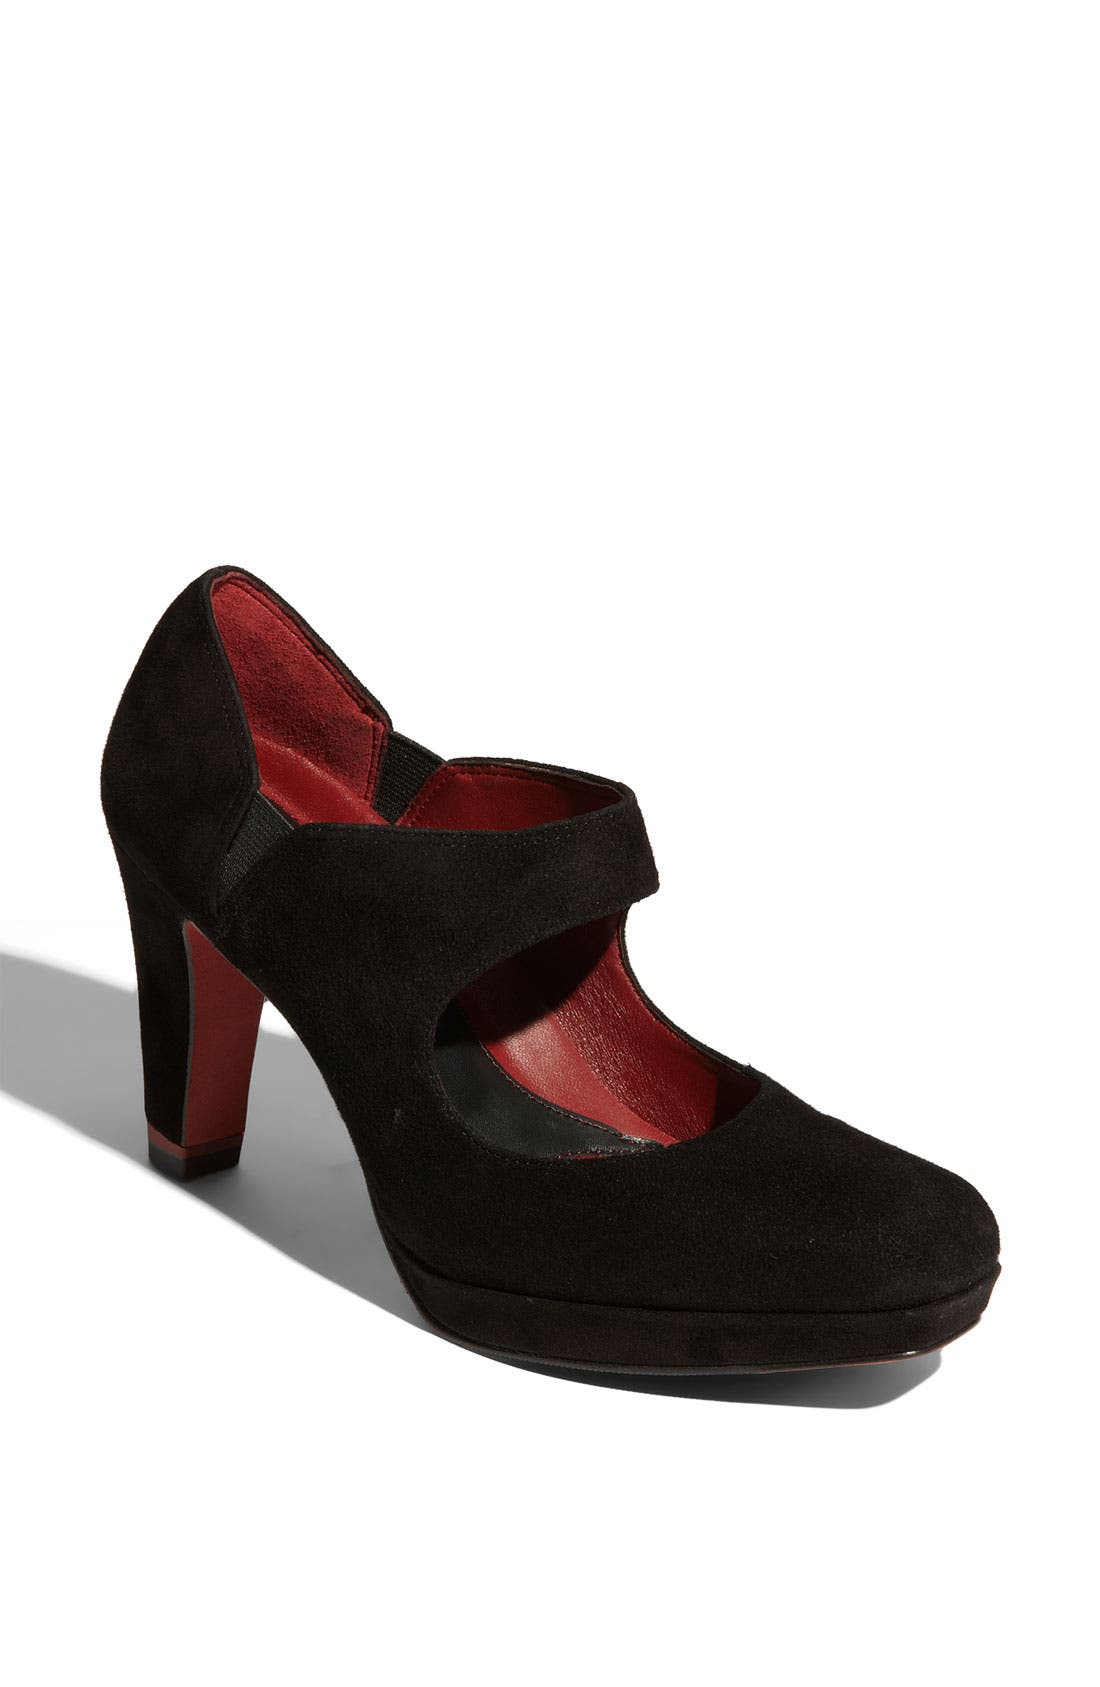 Alternate Image 1 Selected - Oh! Shoes 'Tori' Mary Jane Pump